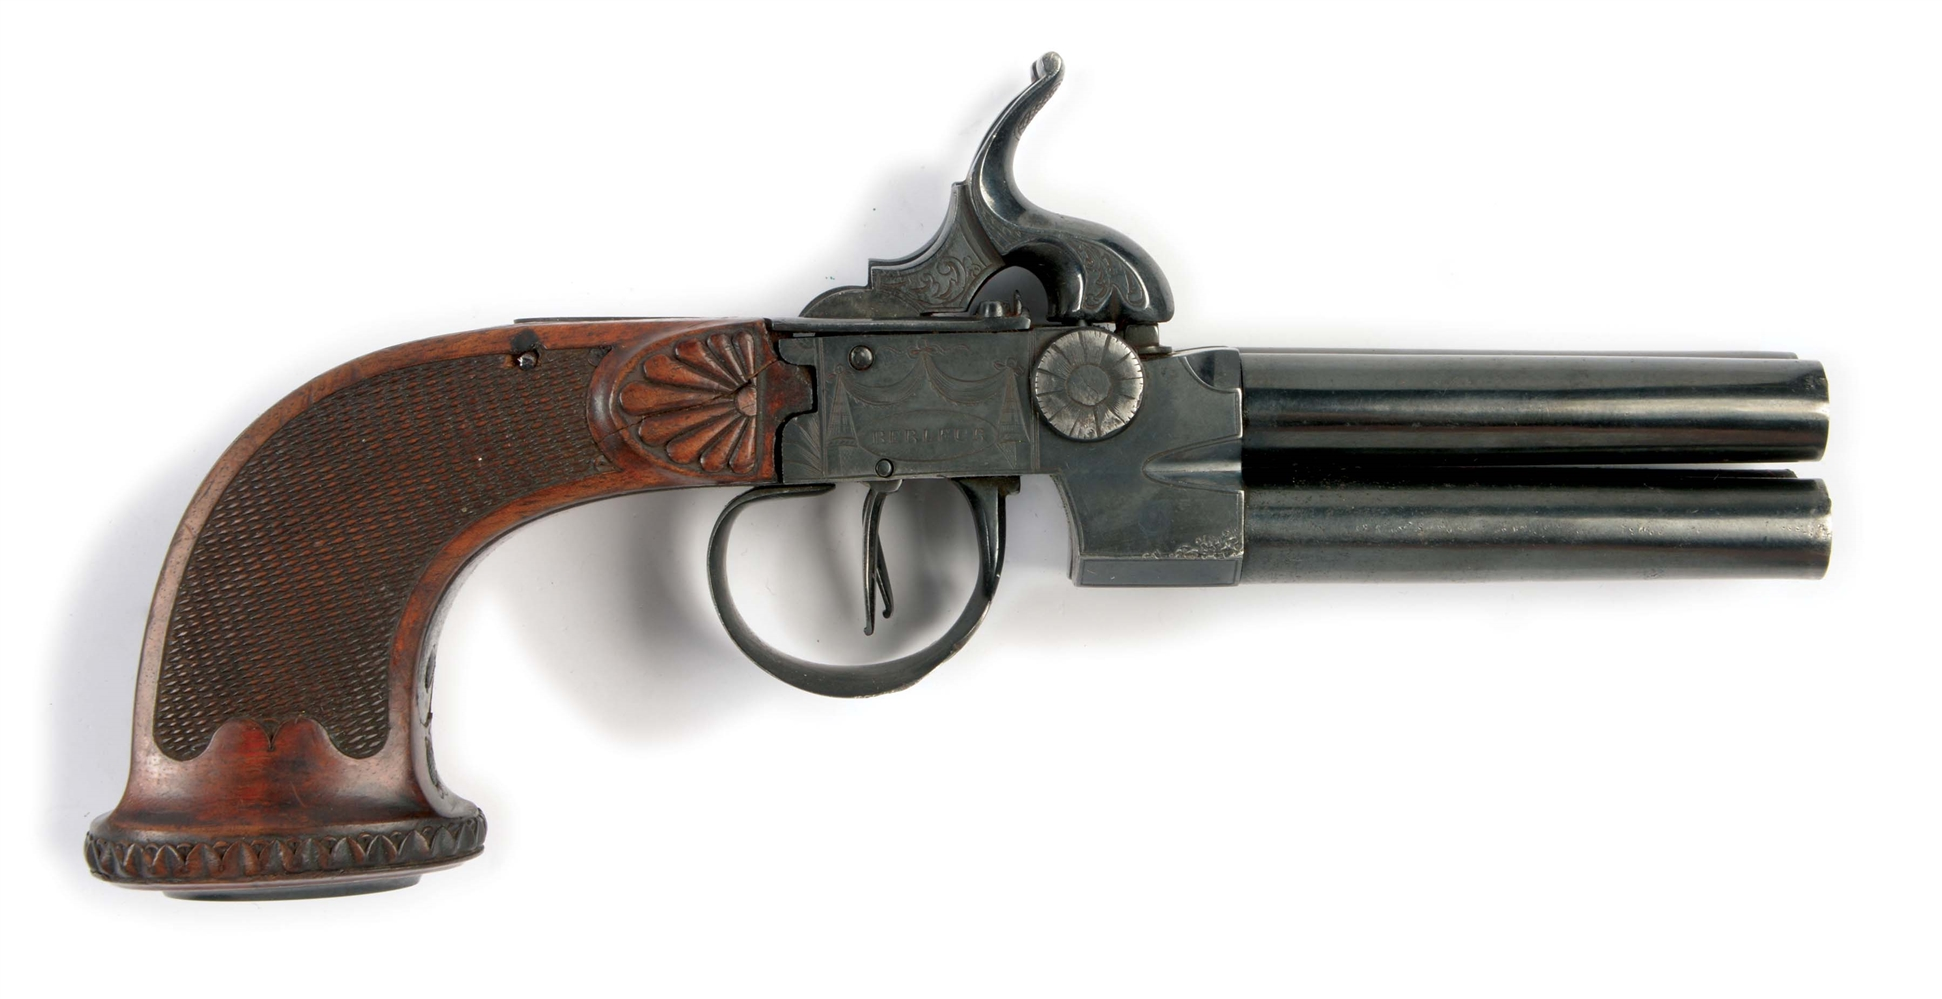 (A) A SCARCE BELGIAN FOUR-BARRELED PERCUSSION PISTOL BY THE RENOWNED BELGIAN MAKER GUILLAUME BERLEUR, 1780-1830, WHO WORKED BESIDE THE FAMOUS NICOLAS BOUTET AT VERSAILLES.